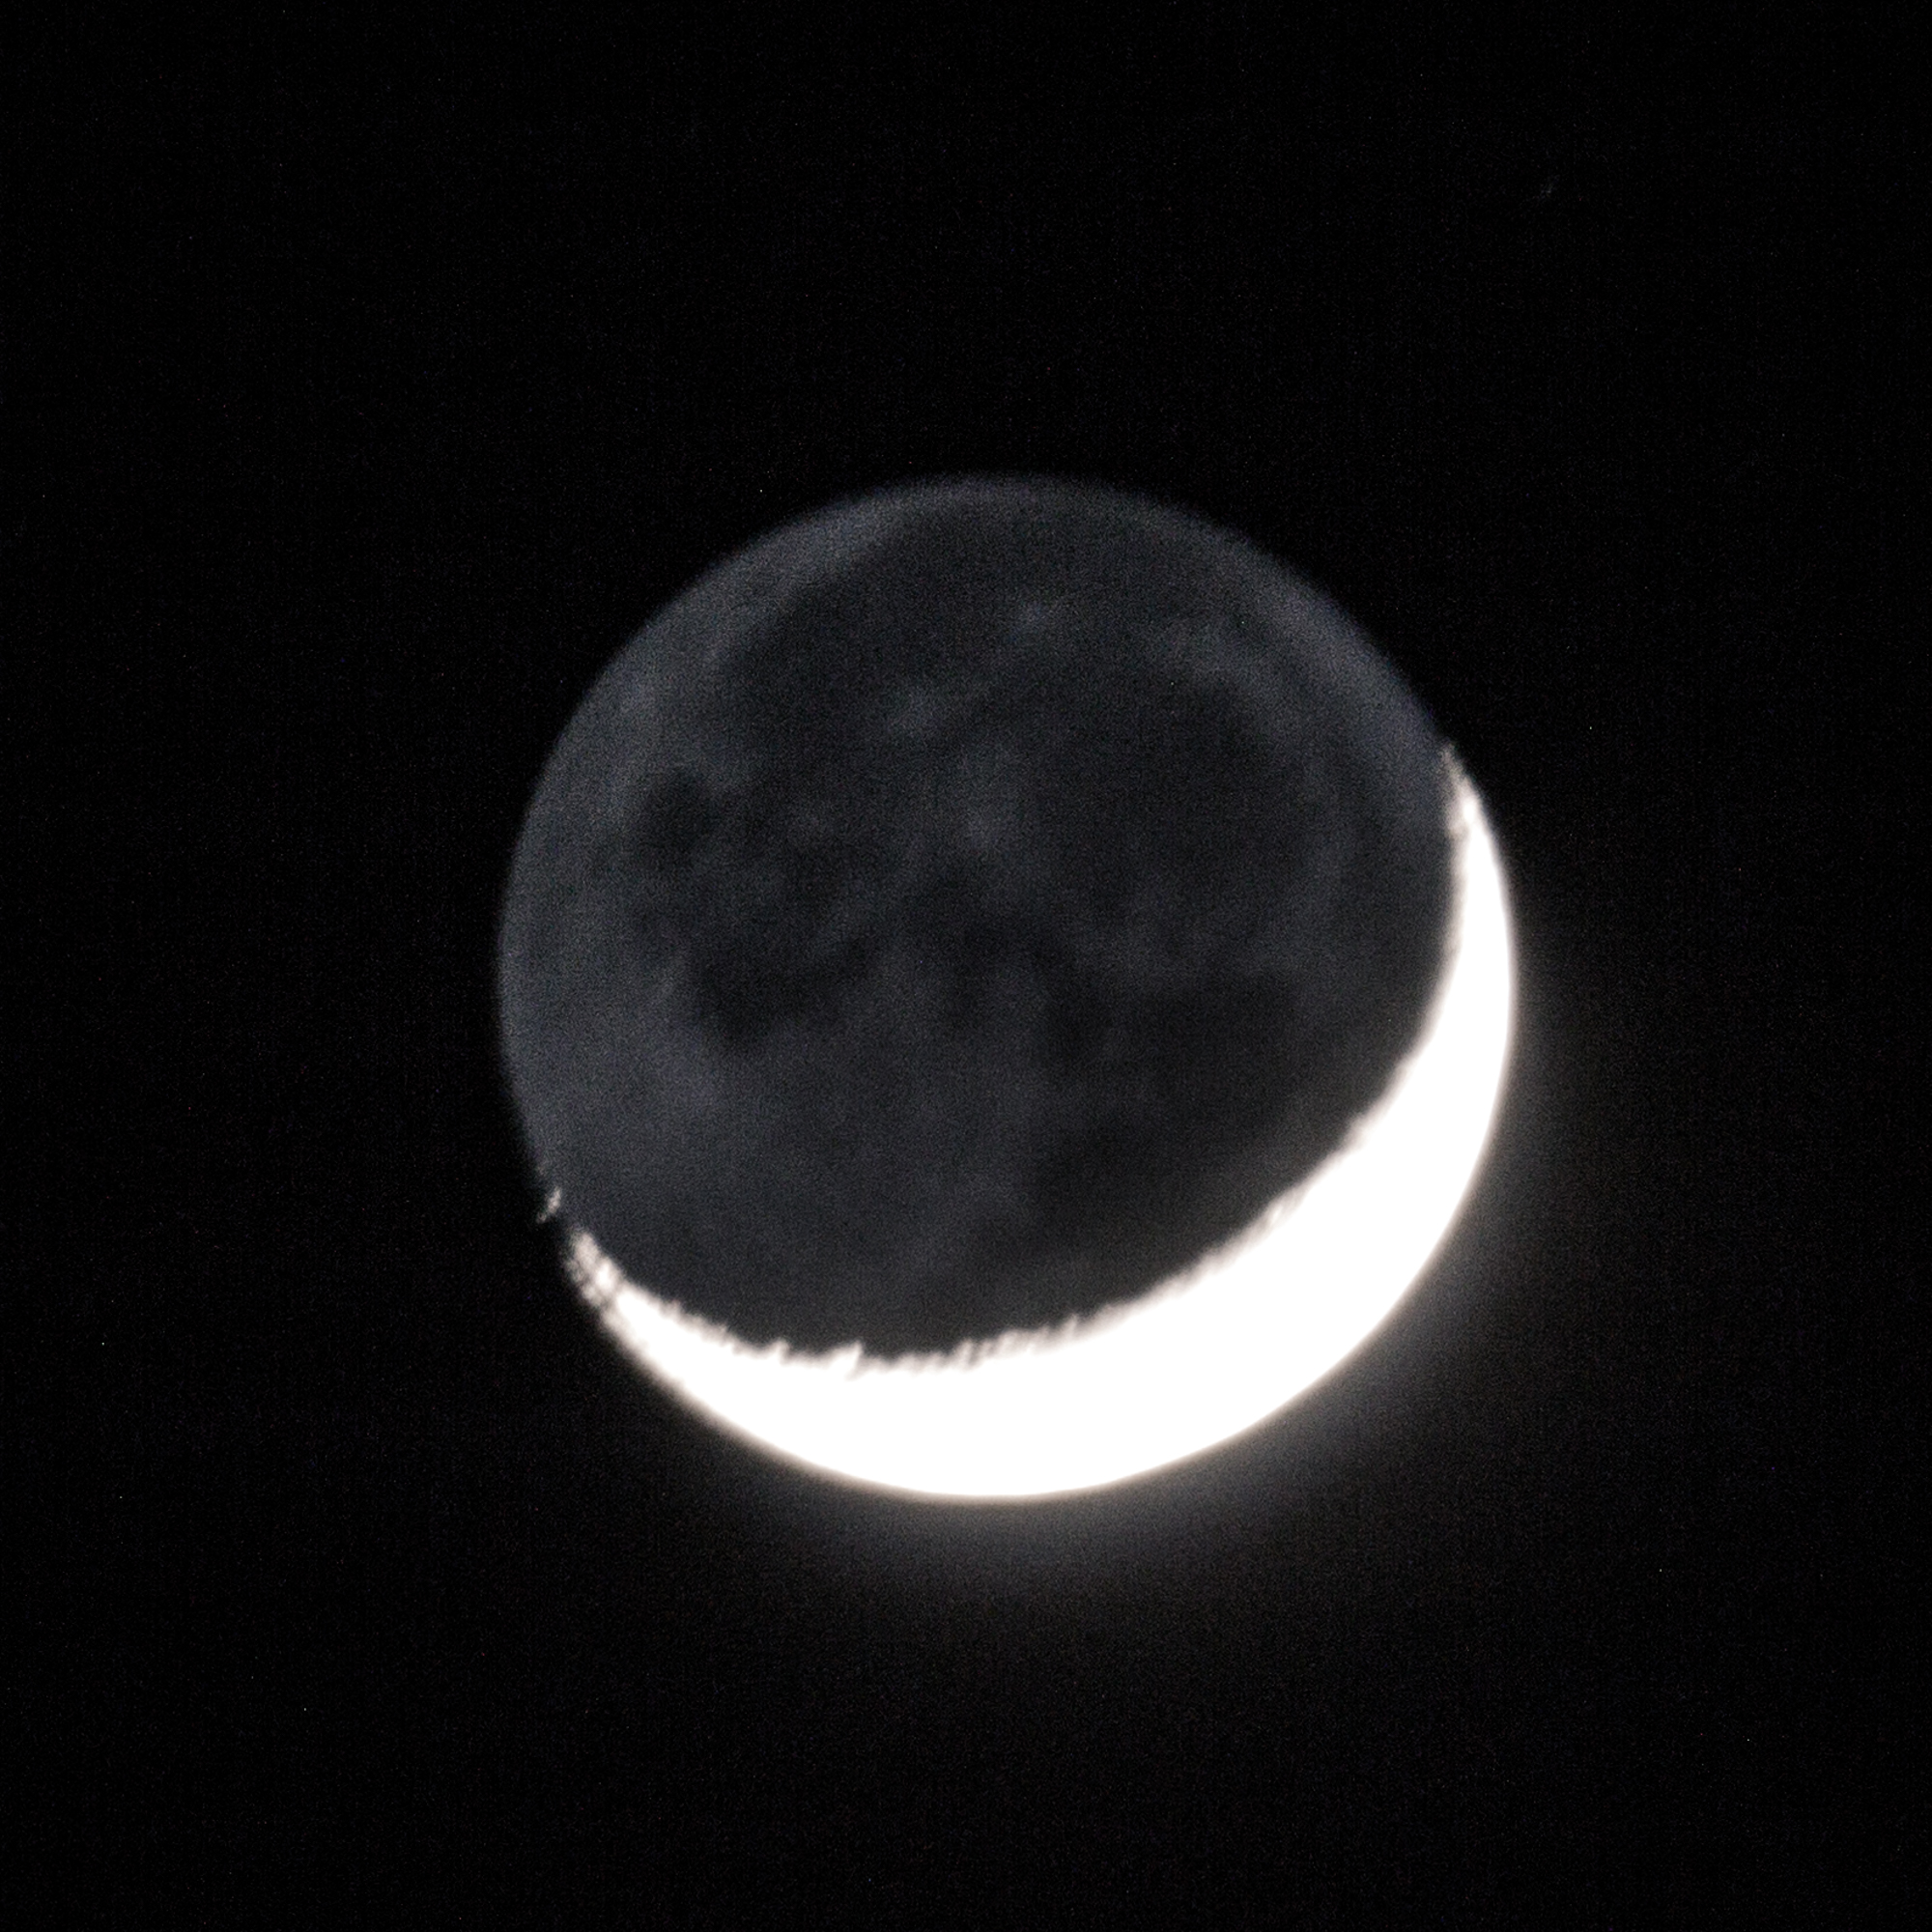 Taken the same night as the above photo. This is an exposure for the shaded side of the moon.